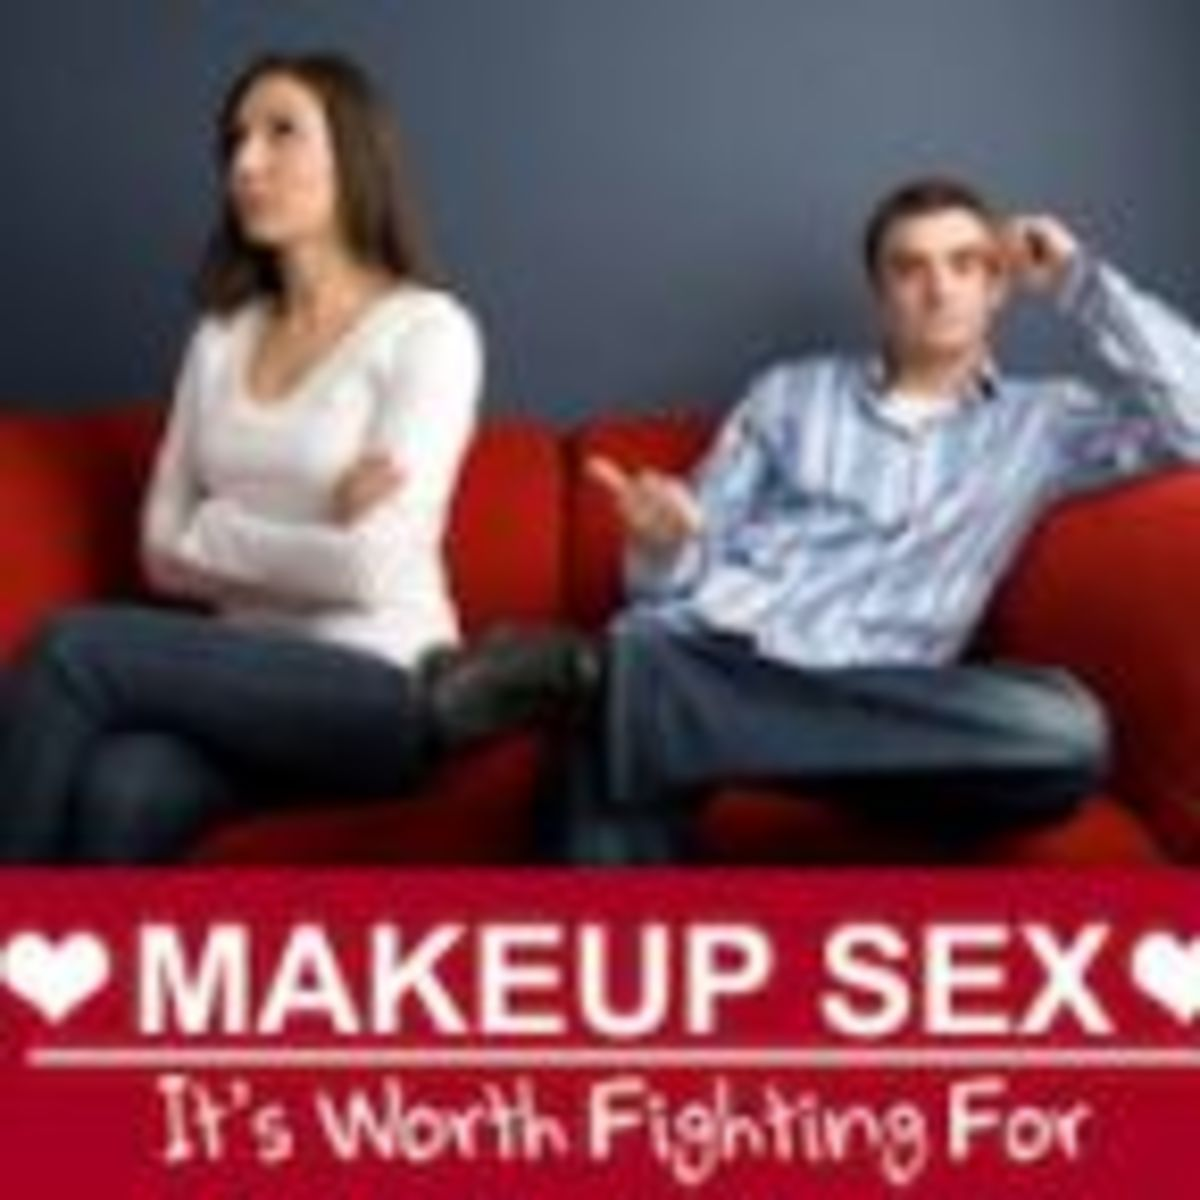 The Truth About Make-Up Sex | Psychology Today